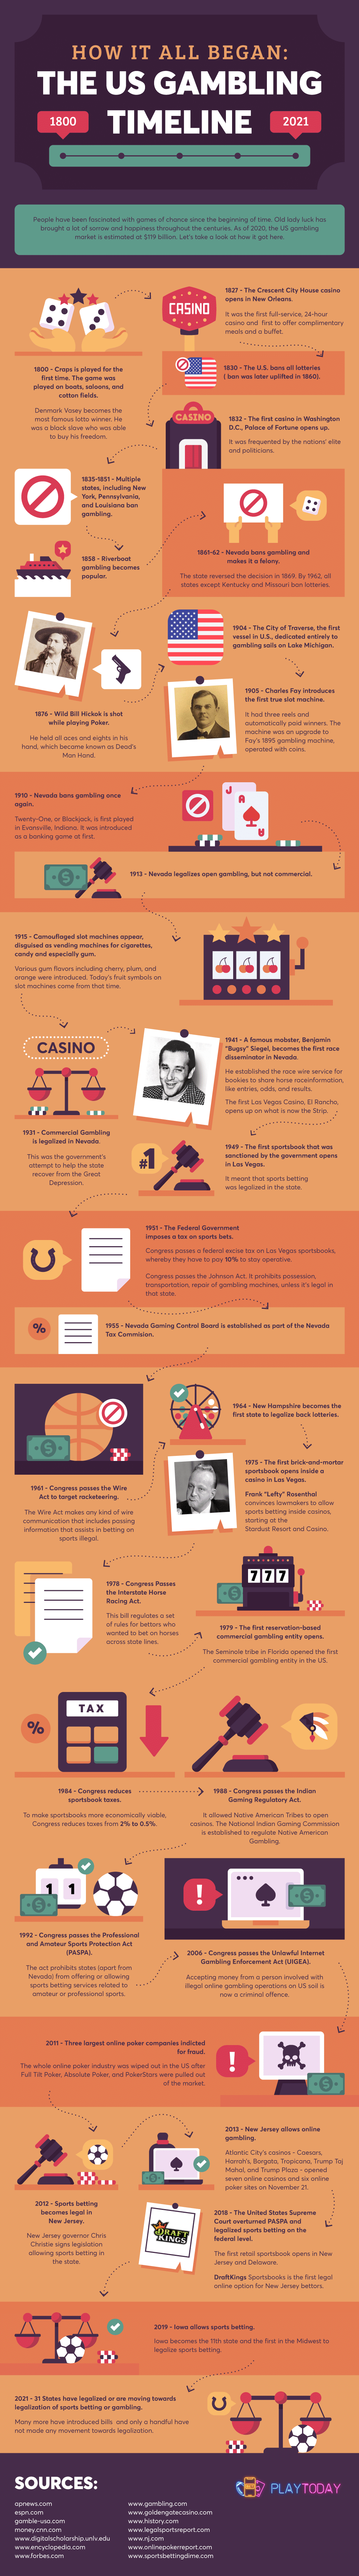 History of Gambling in the US - Infographic1